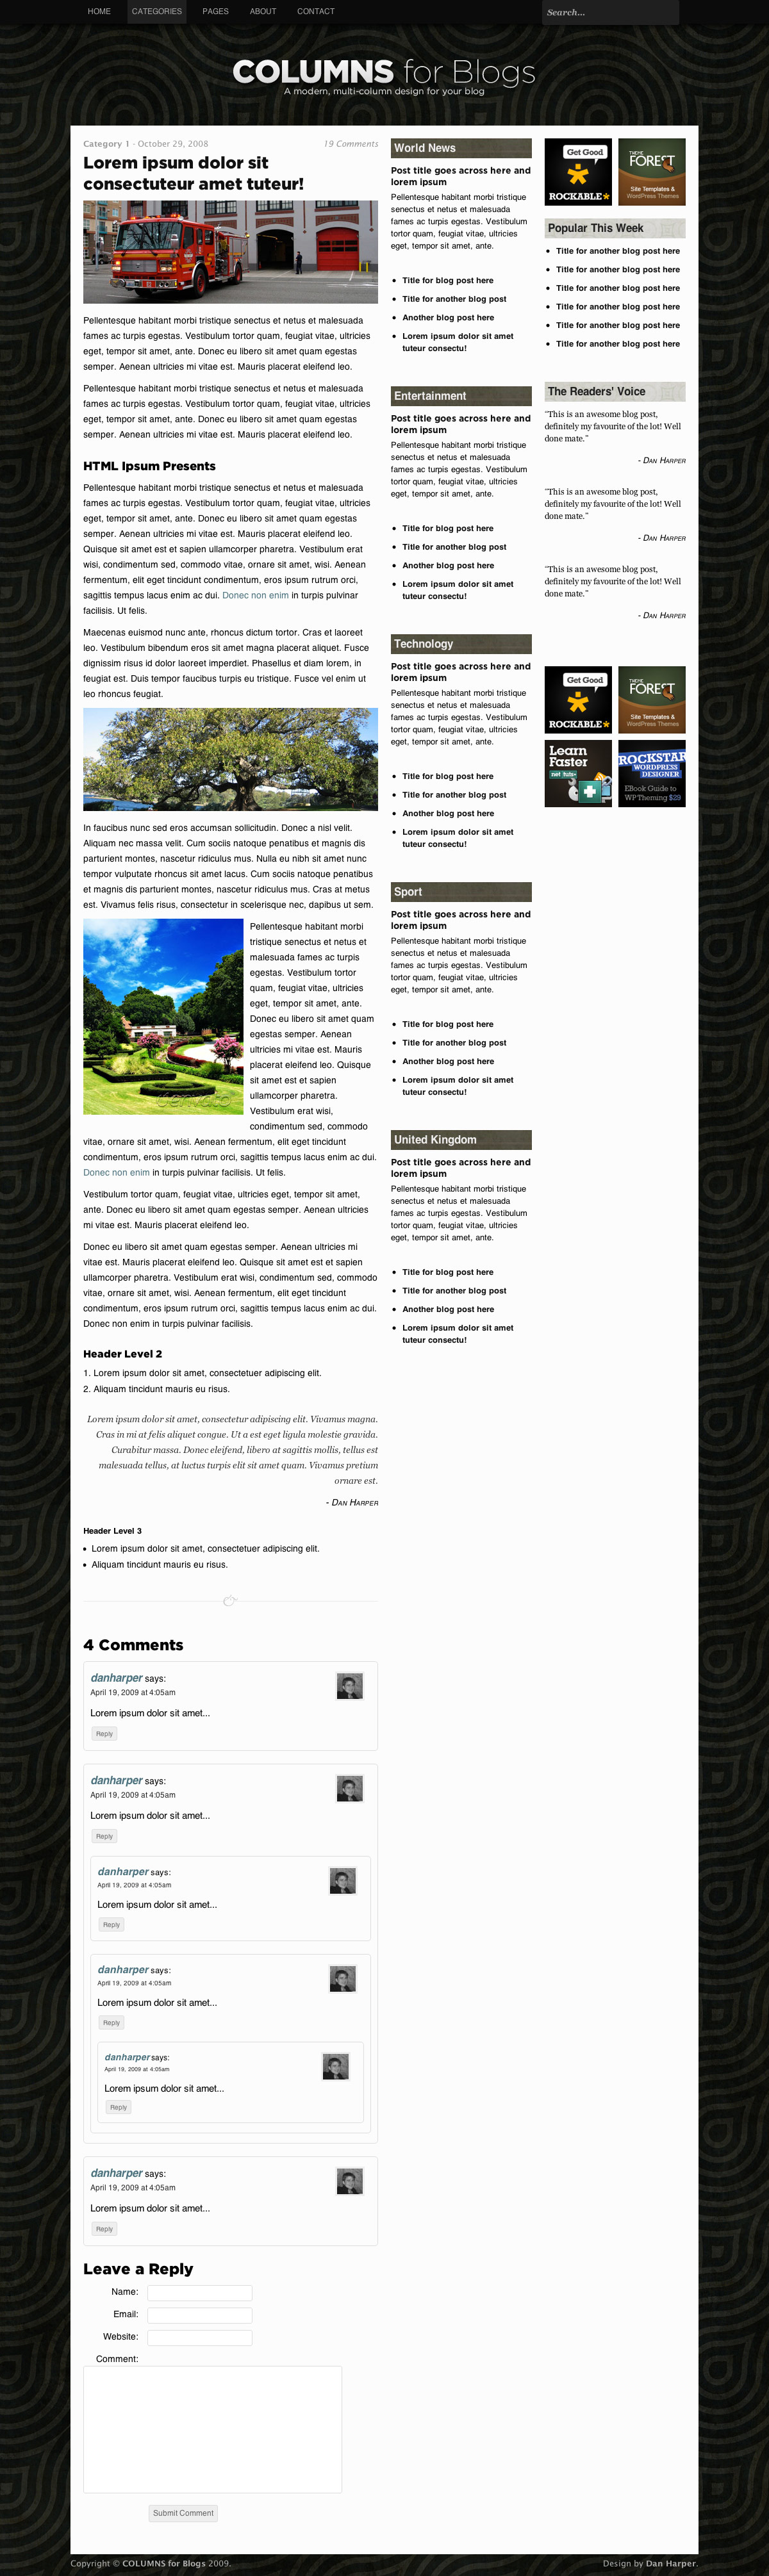 COLUMNS Blog Design - 3-column single post & comments page